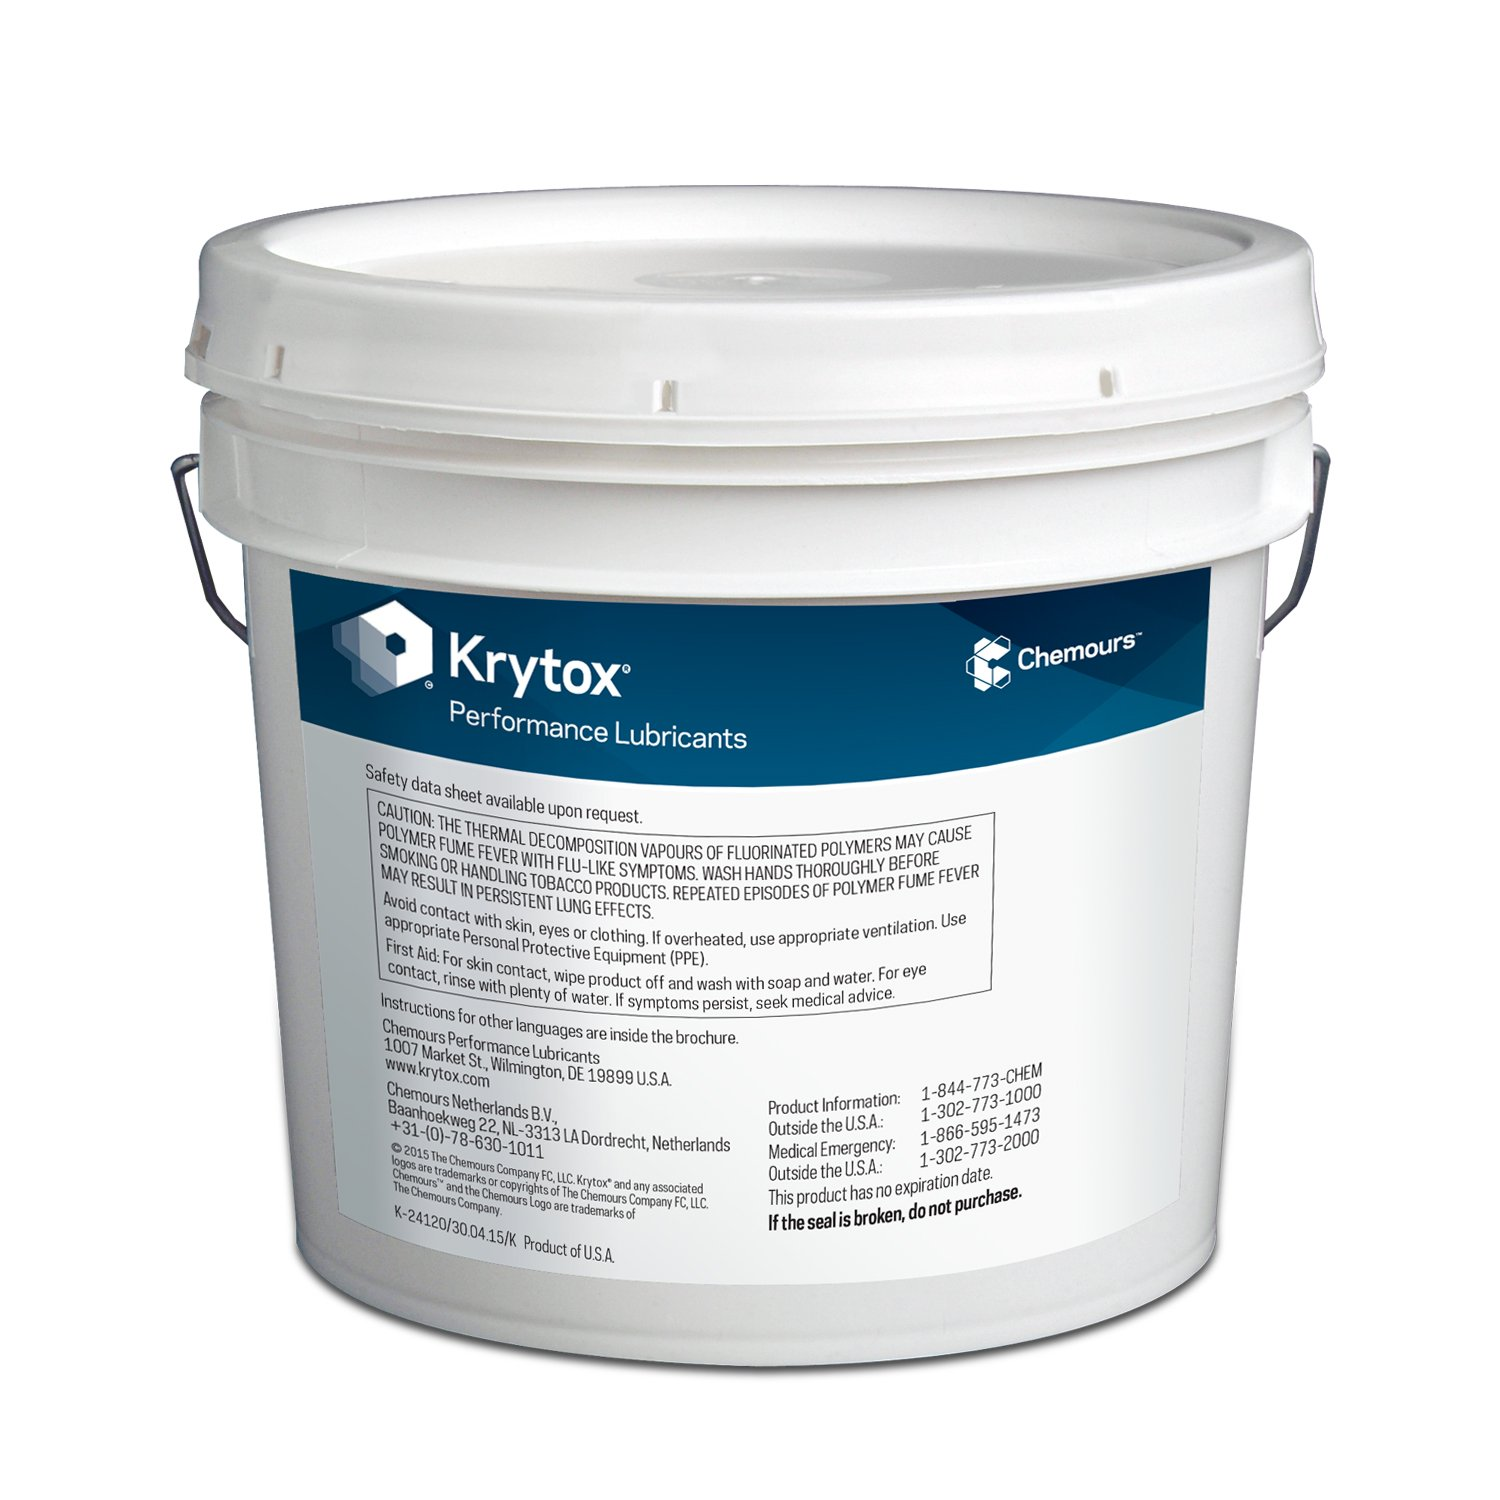 Krytox GPL 205 Grease, Pure PFPE/PTFE, 0 5 oz Tube